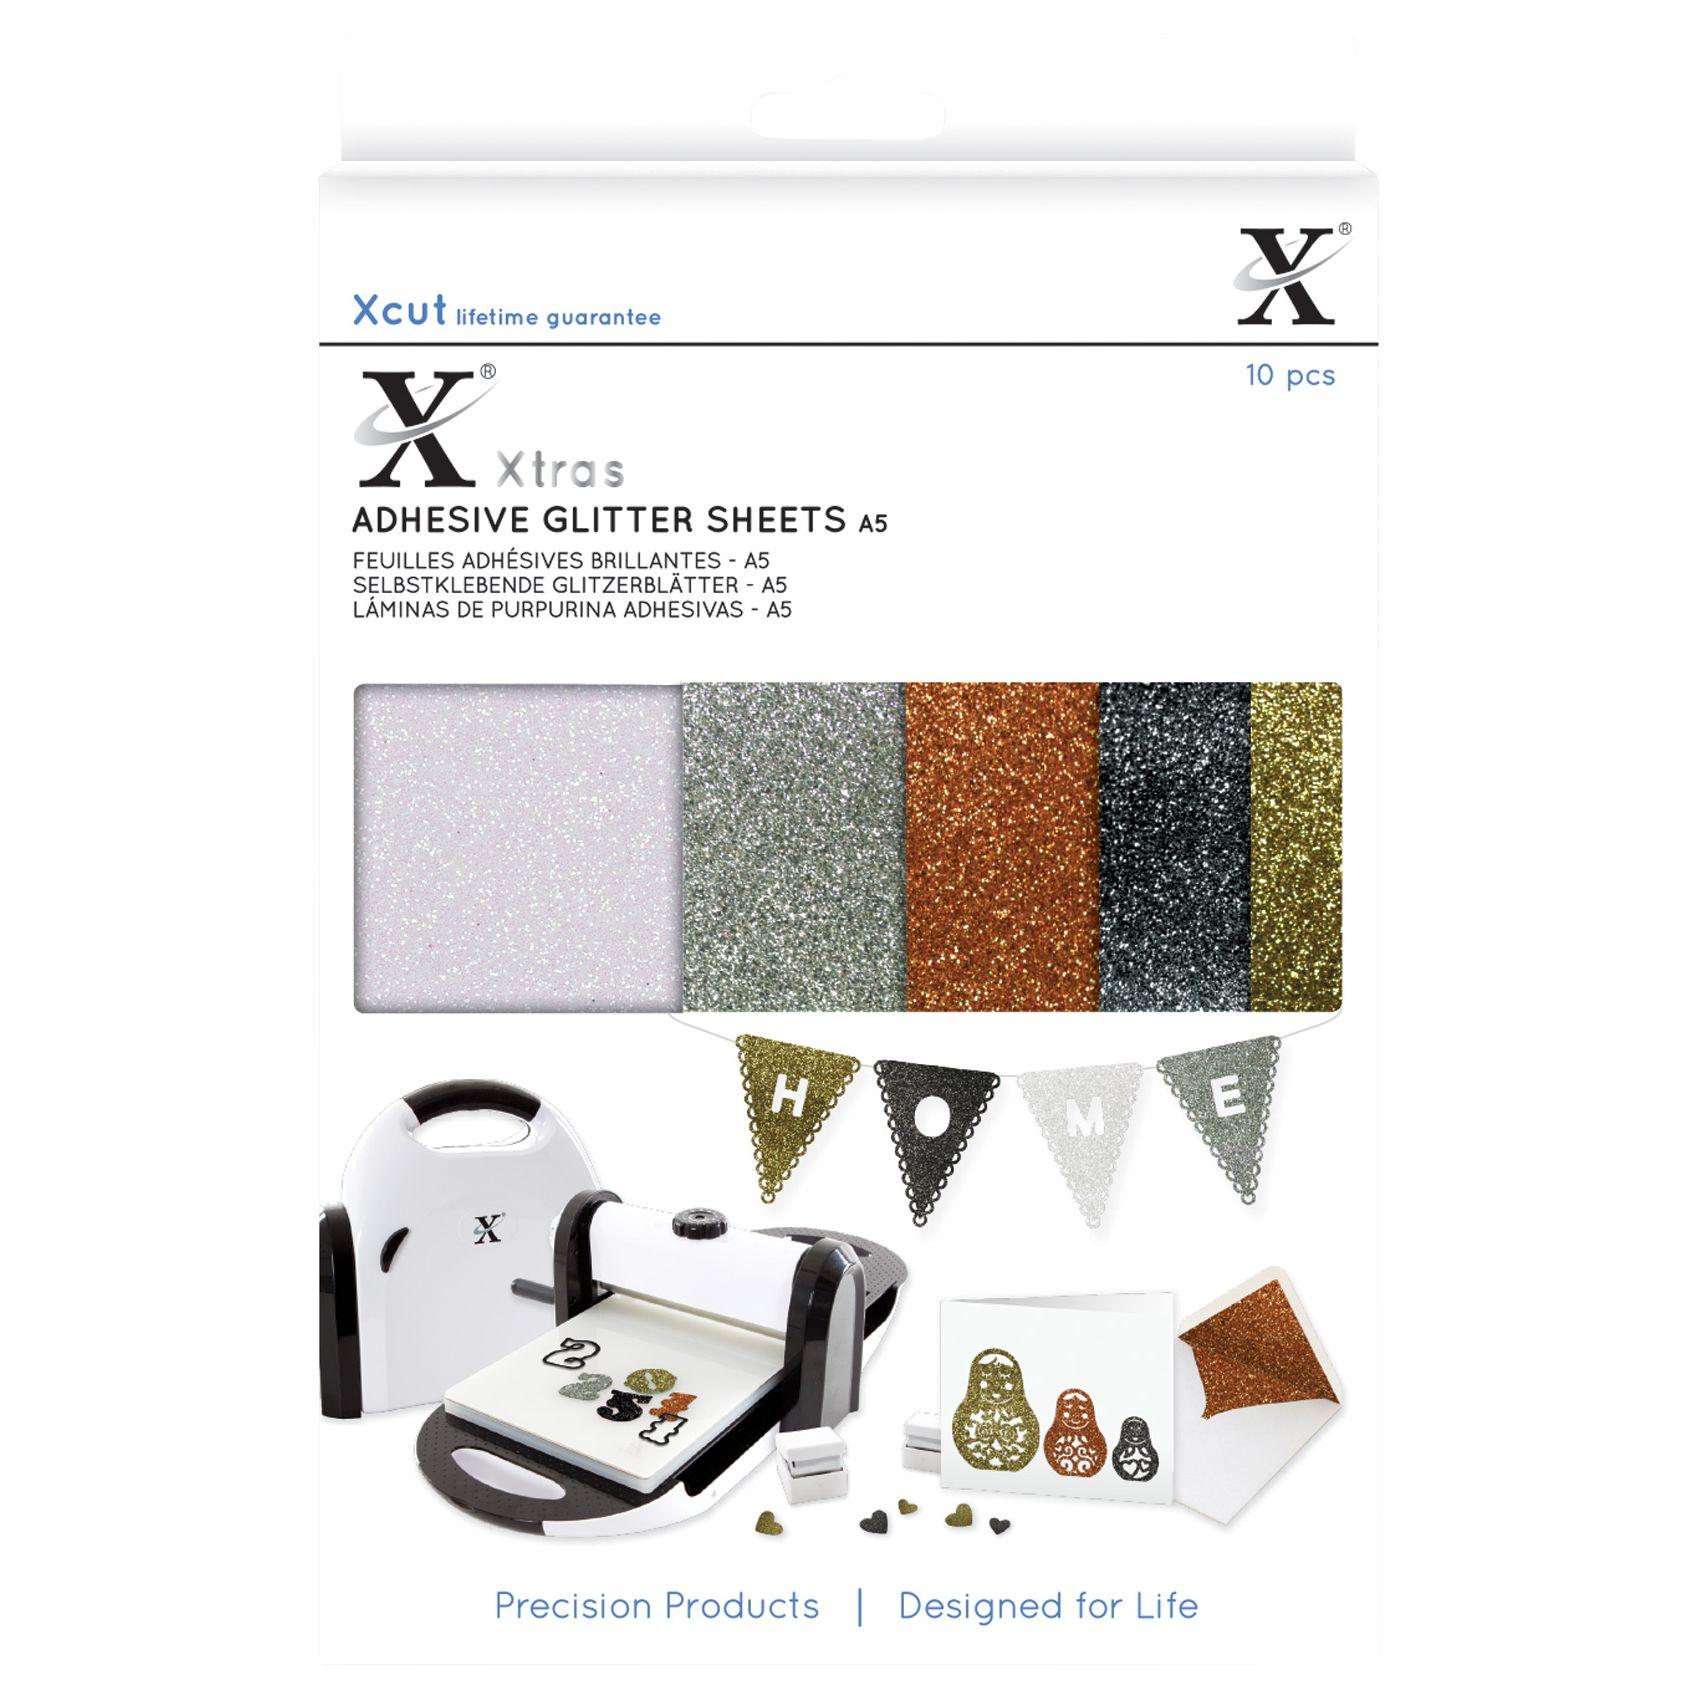 DoCrafts Docrafts Xcut A5 Adhesive Glitter Sheets, Pack of 10, Gold/Multi